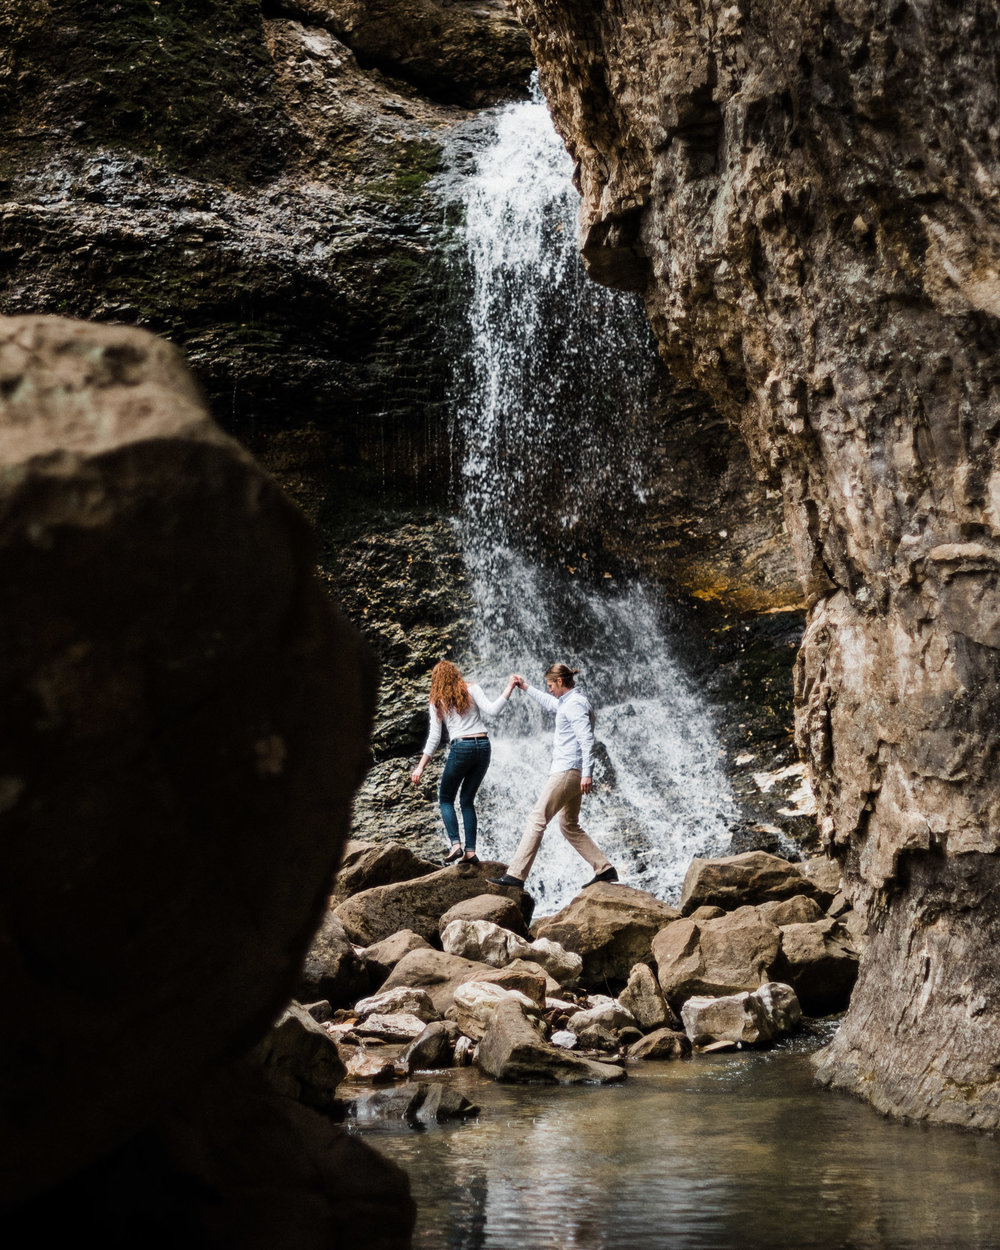 Blake & Olivia Engagements at Lost Valley - Tanner Burge Photography .jpg